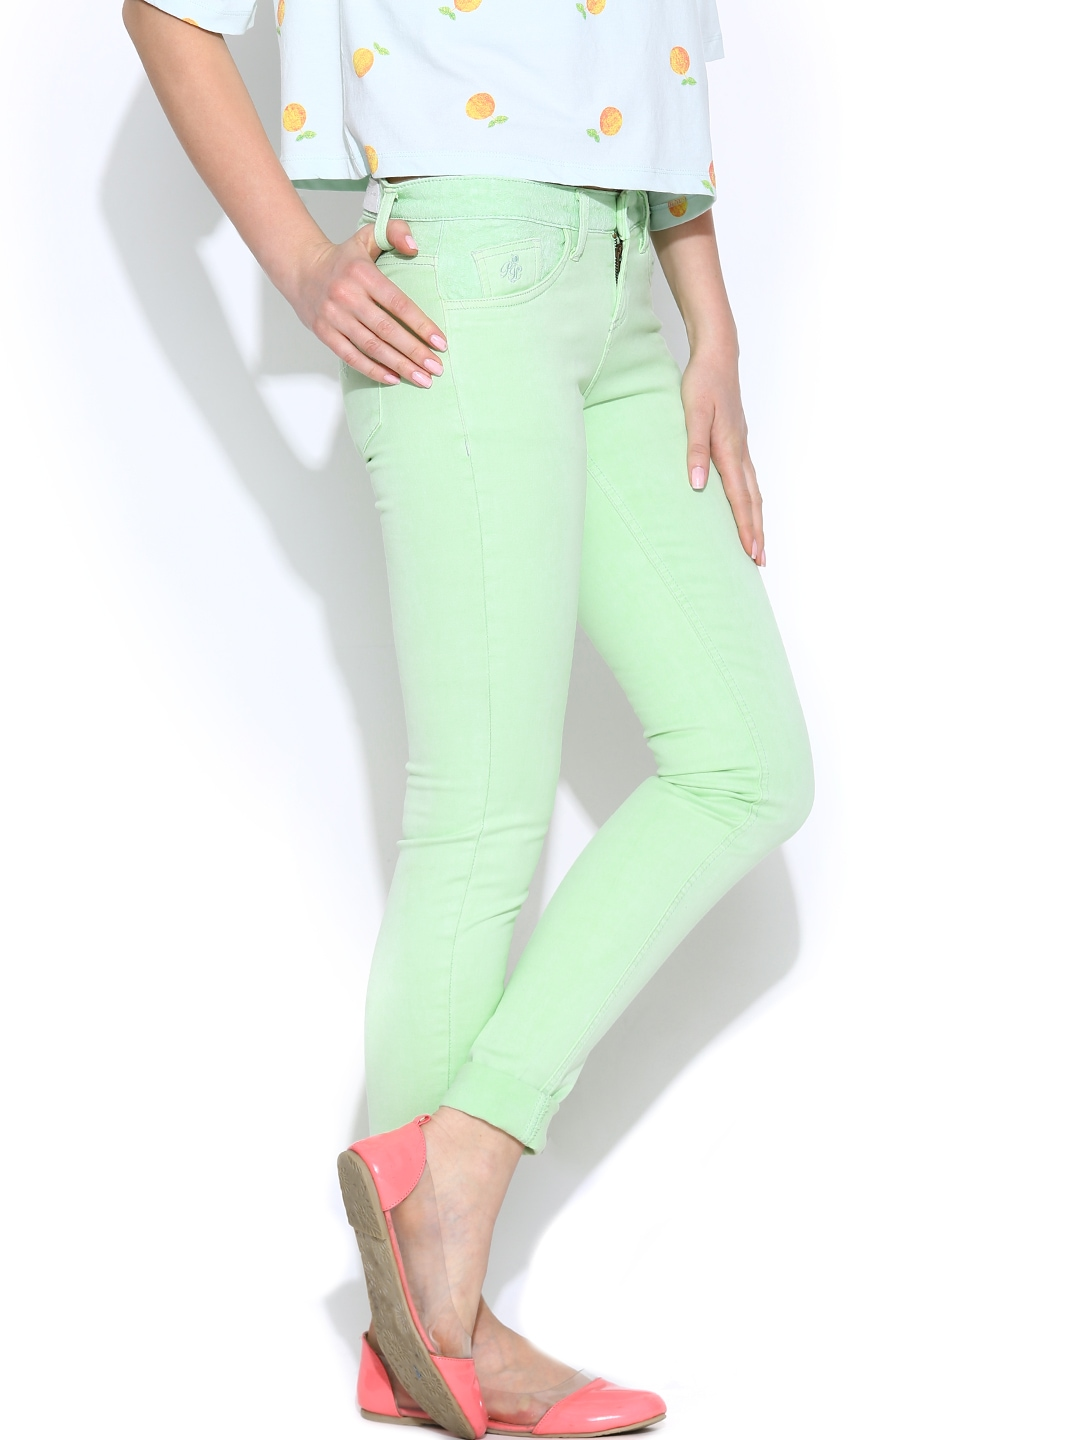 Simple New Slack Swing Pants In Mint For Women  Aewom